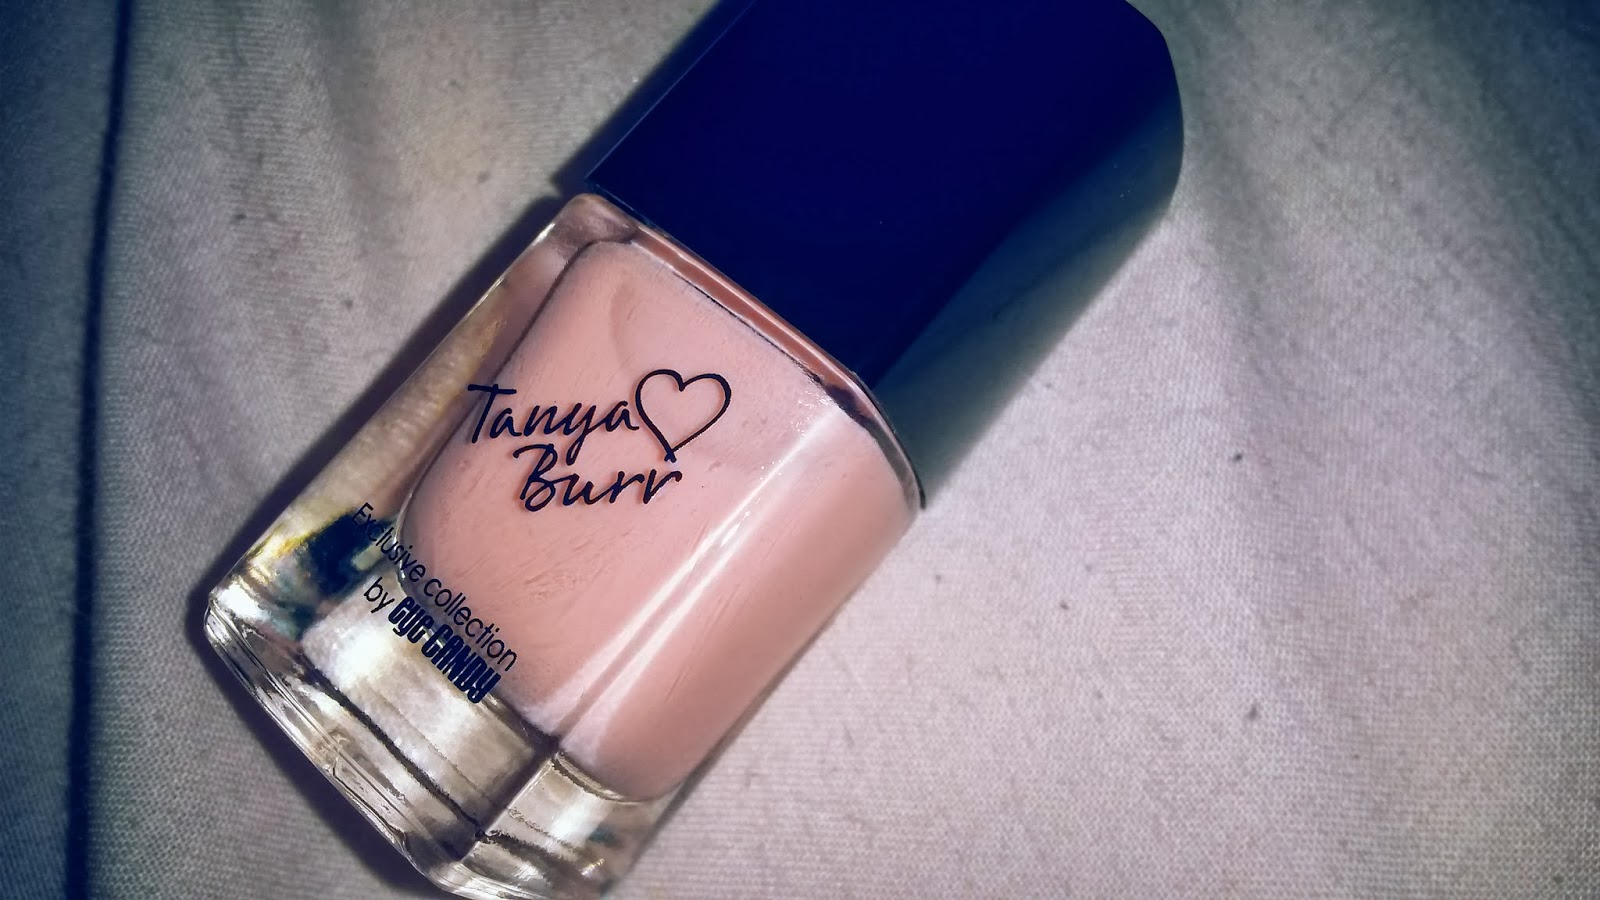 Tanya burr nail polish 12ml feeluniquecom